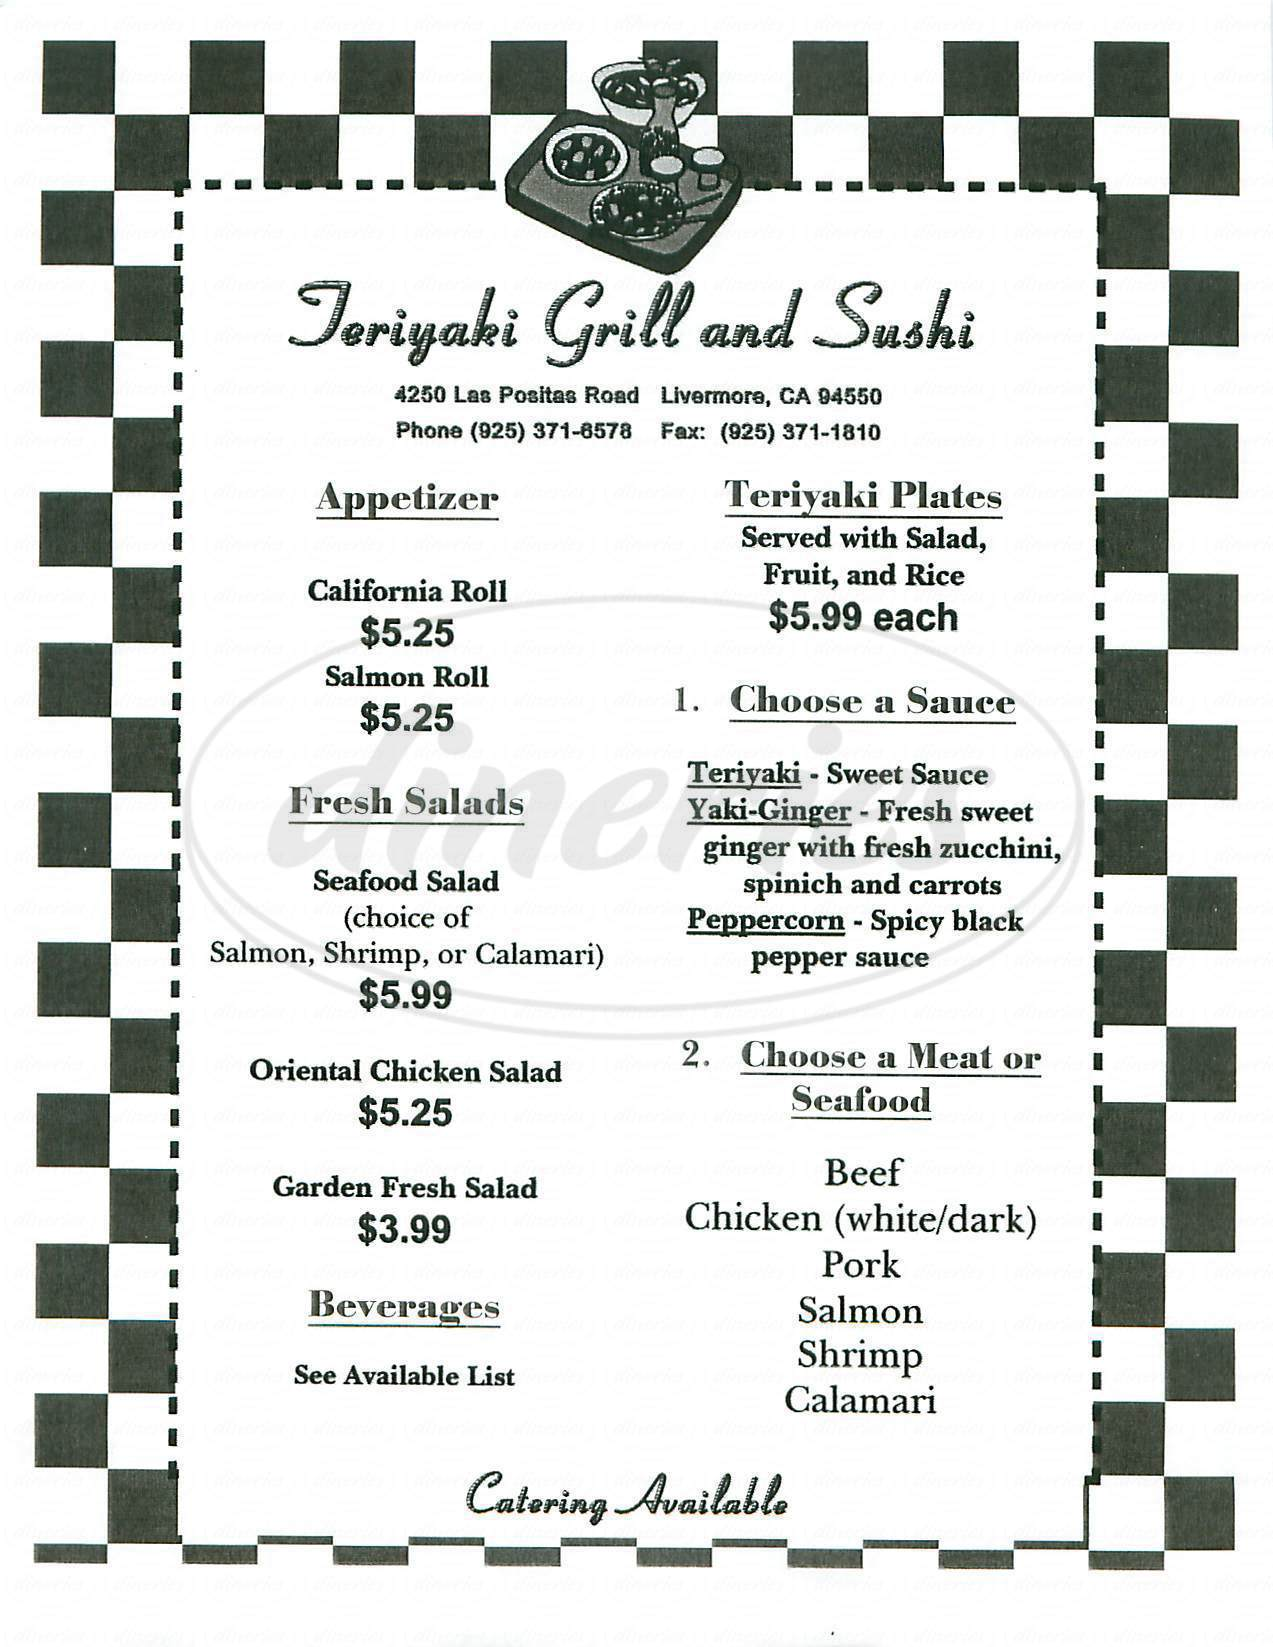 menu for Teriyaki Grill and Sushi